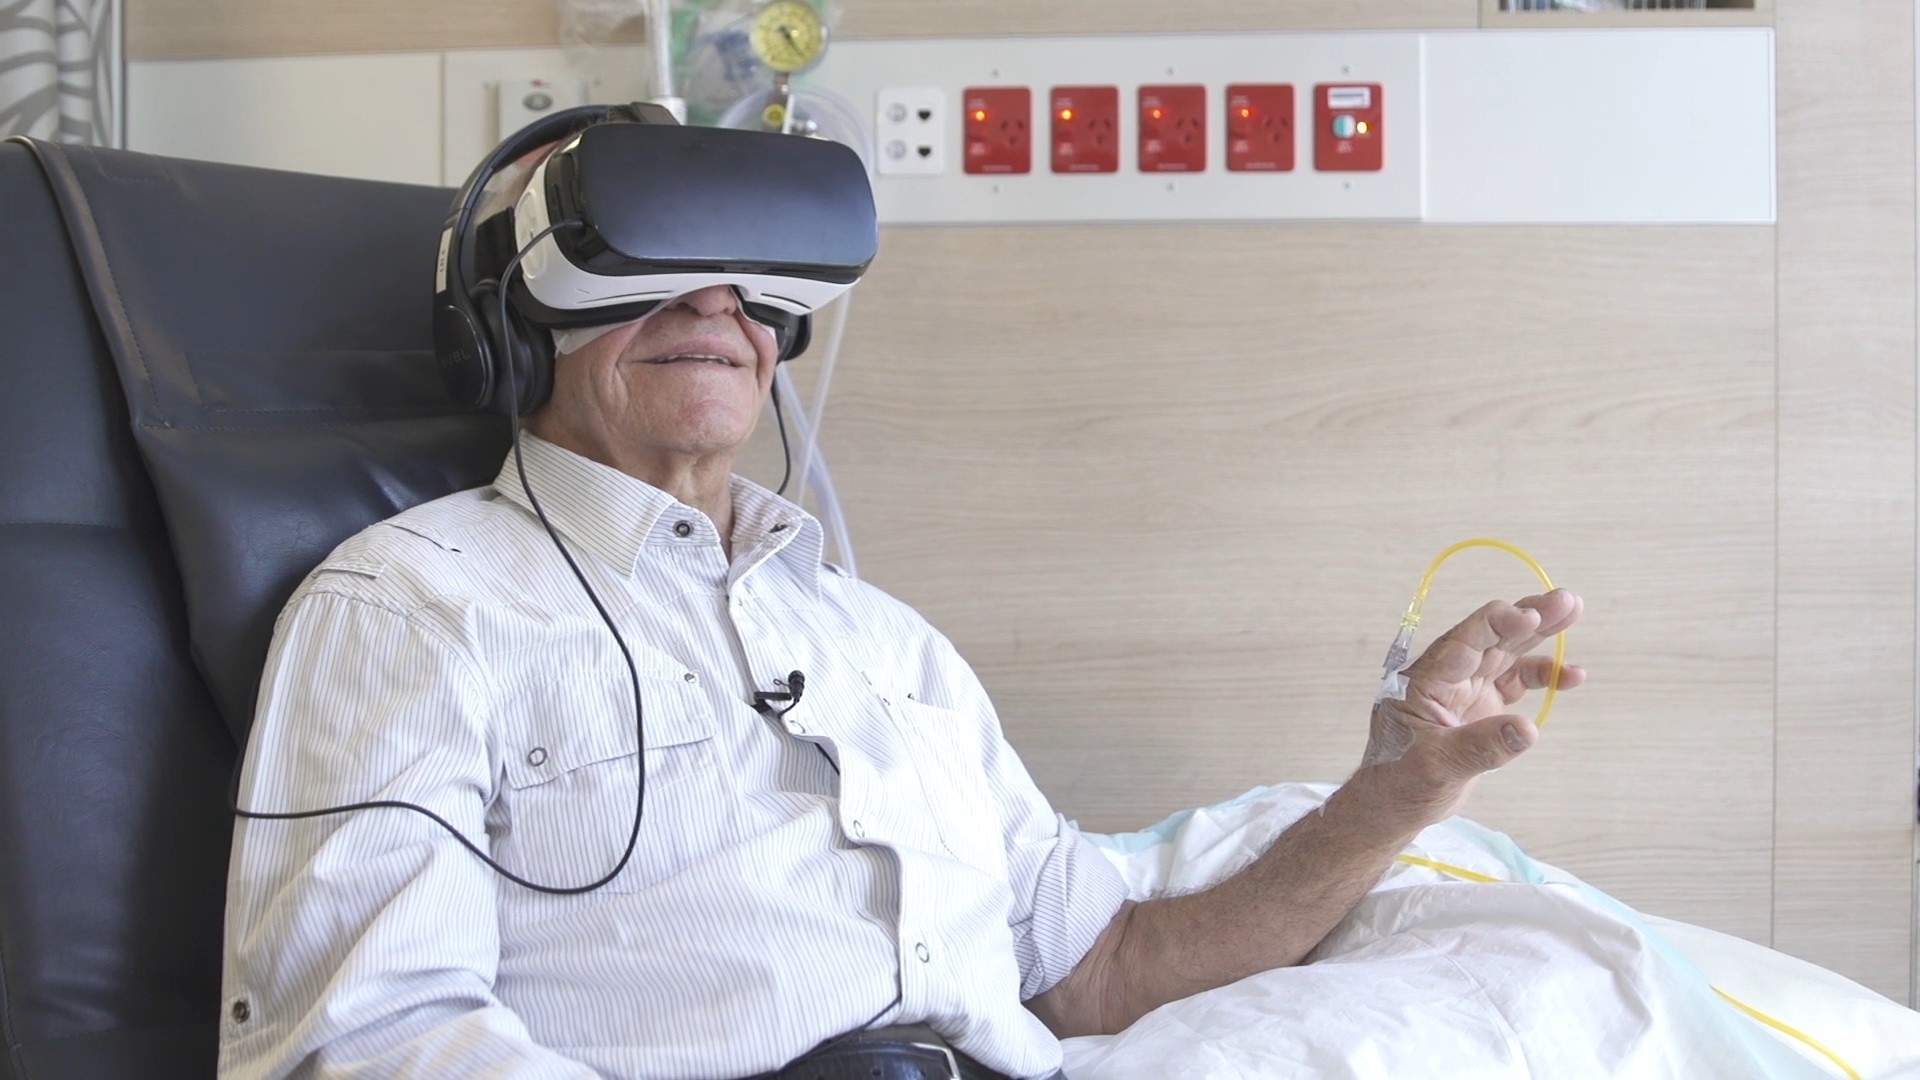 First virtual reality medical platform launched in the EU